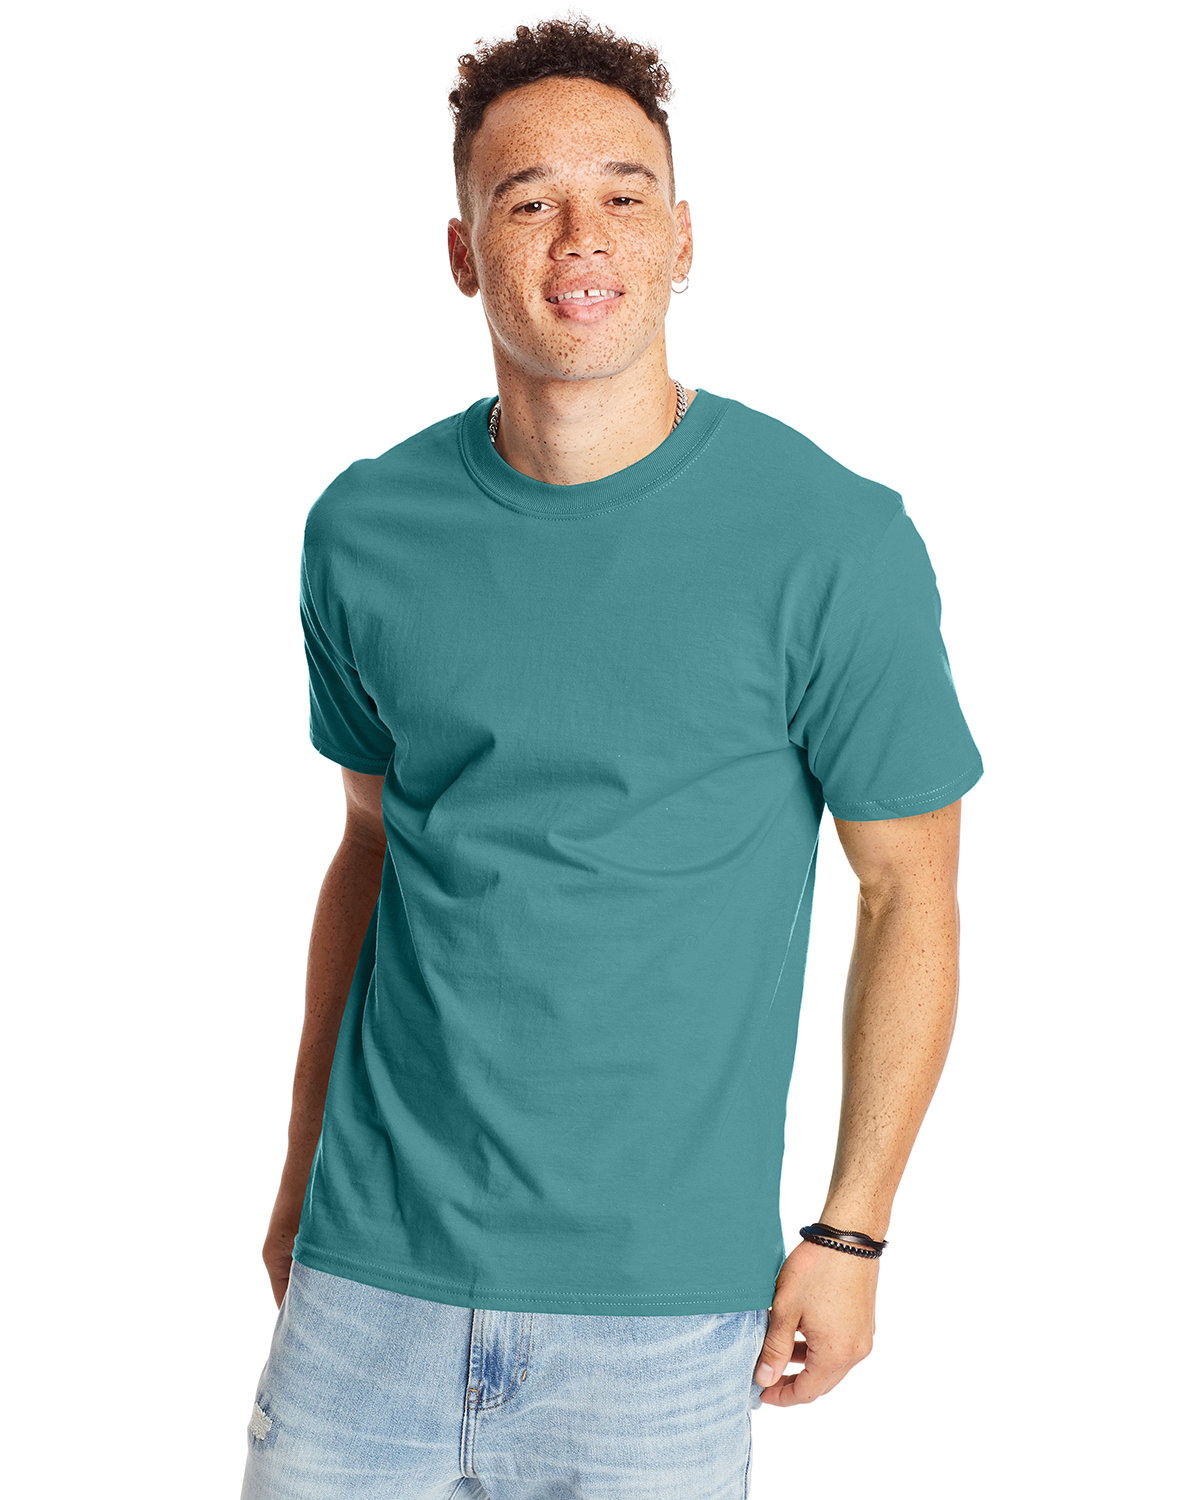 Hanes Unisex Beefy-T® T-Shirt GREEN CLAY